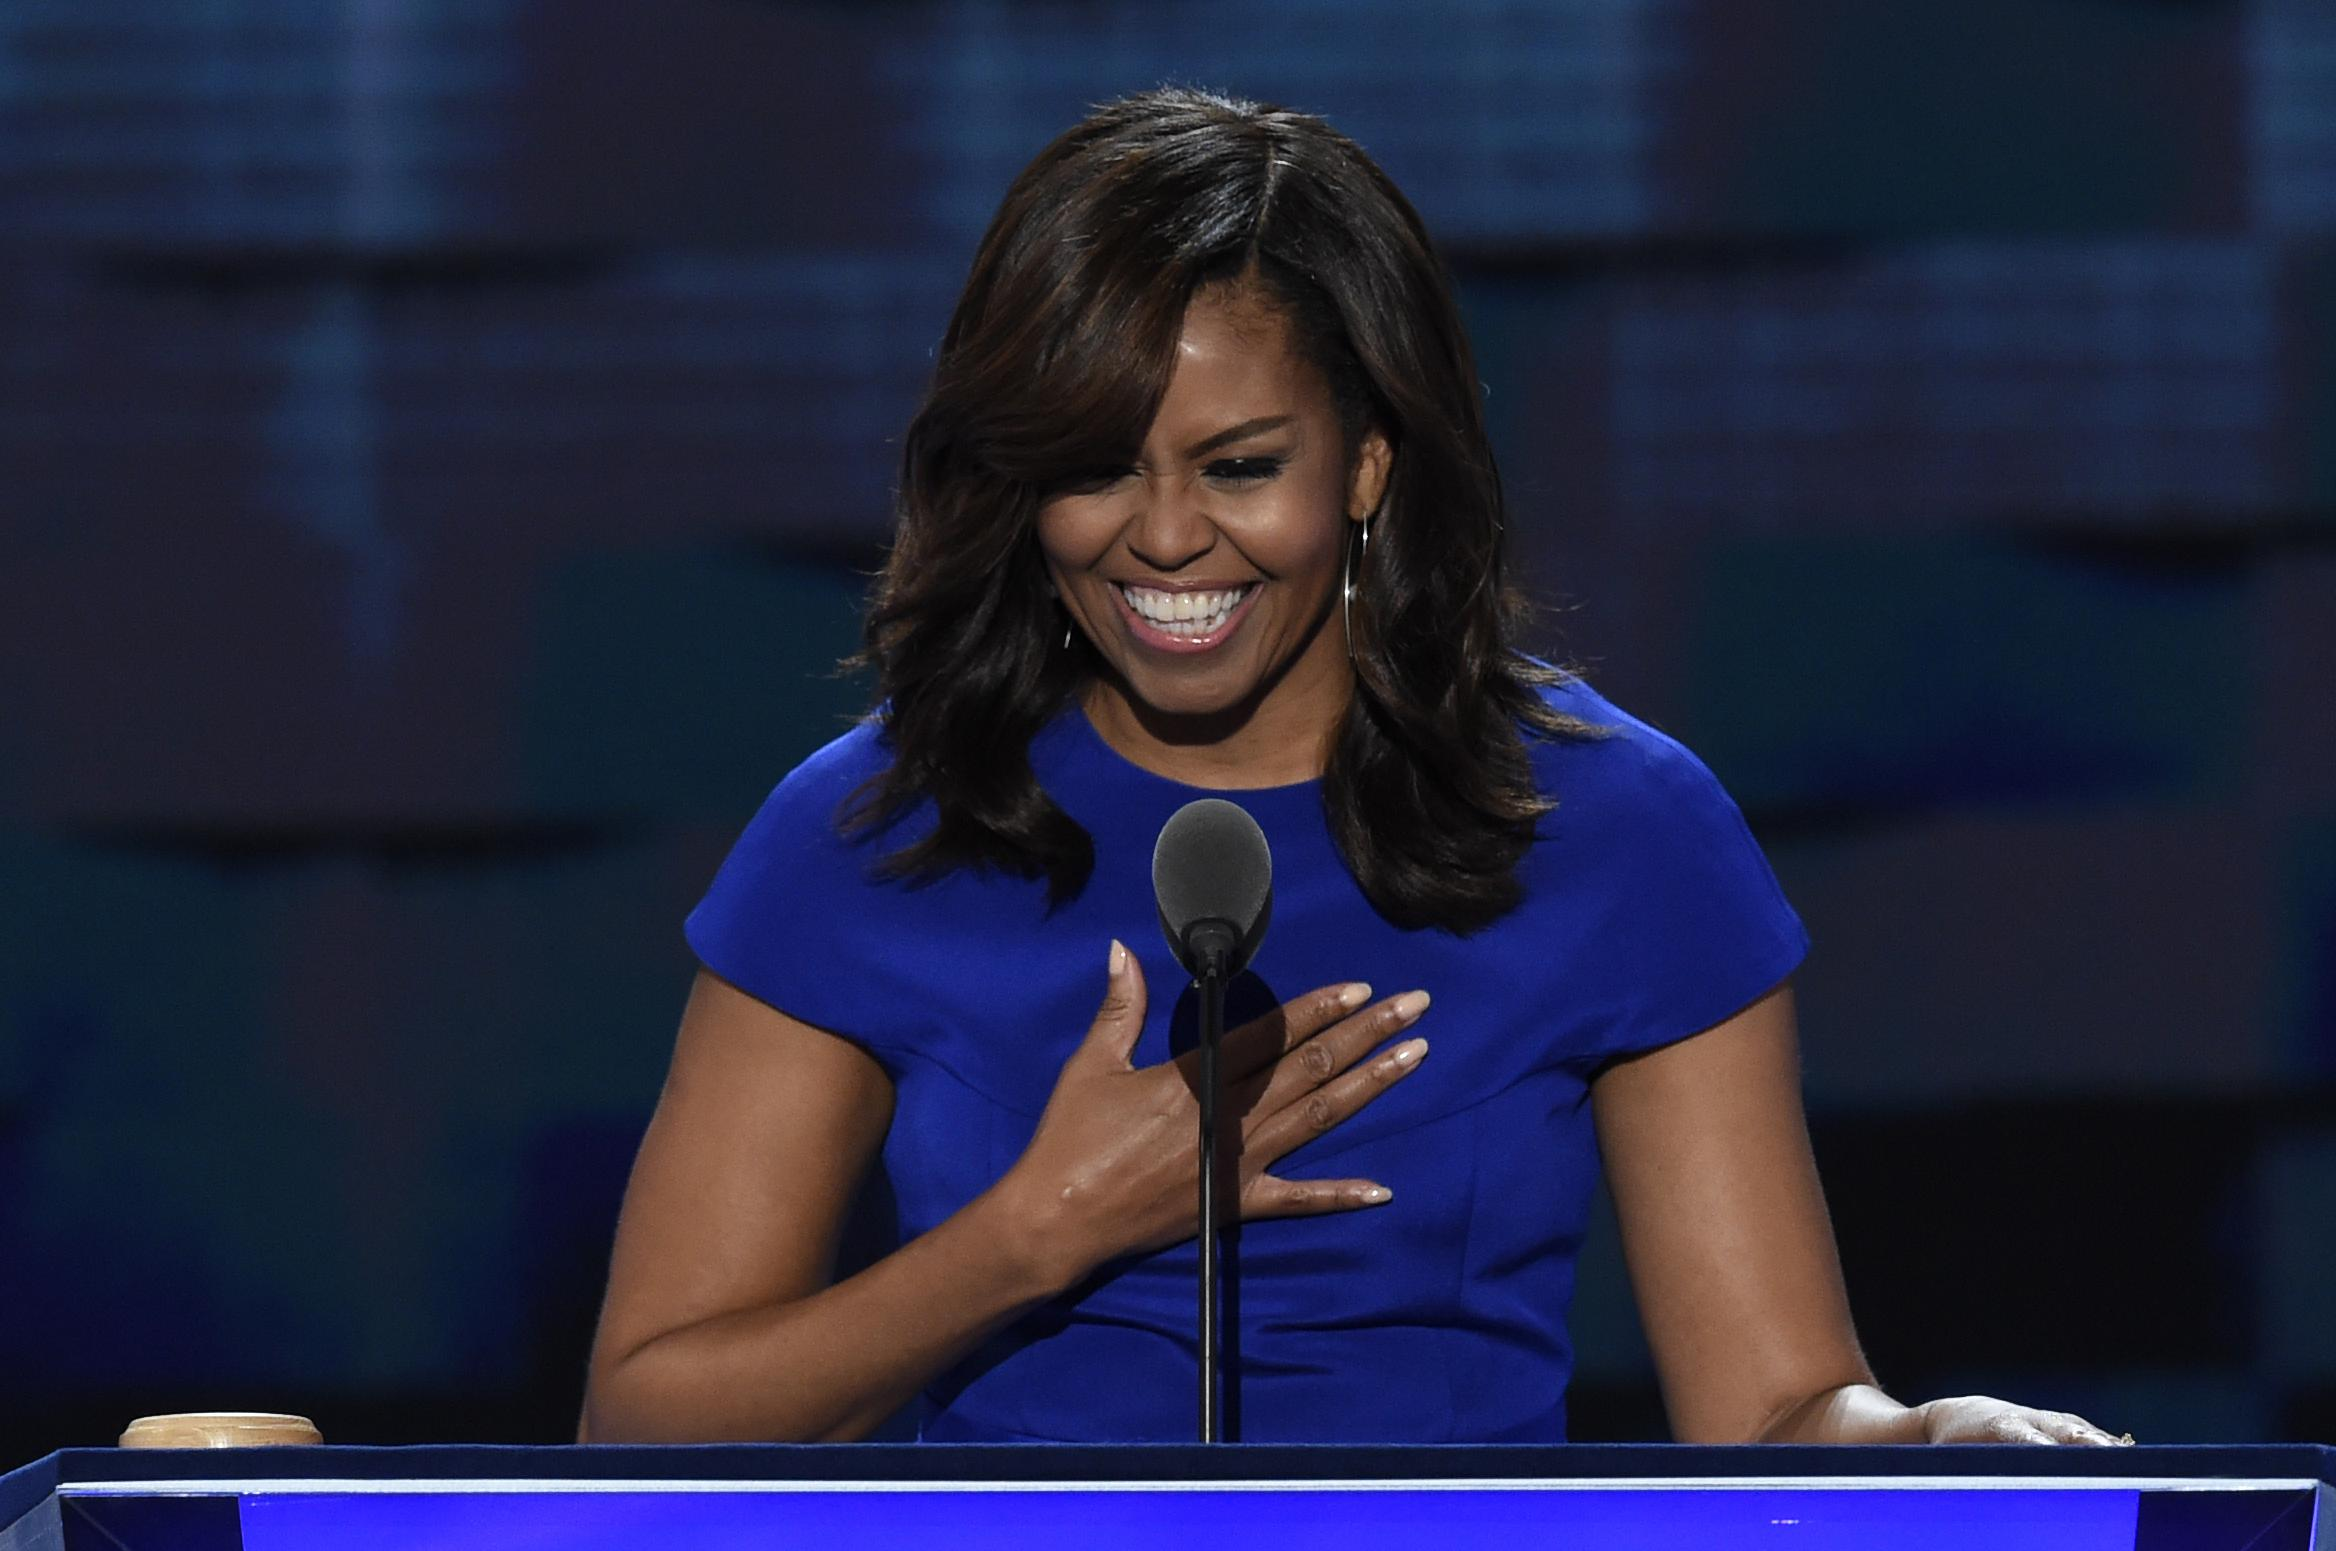 READ: Michelle Obama's Speech At 2016 Democratic National